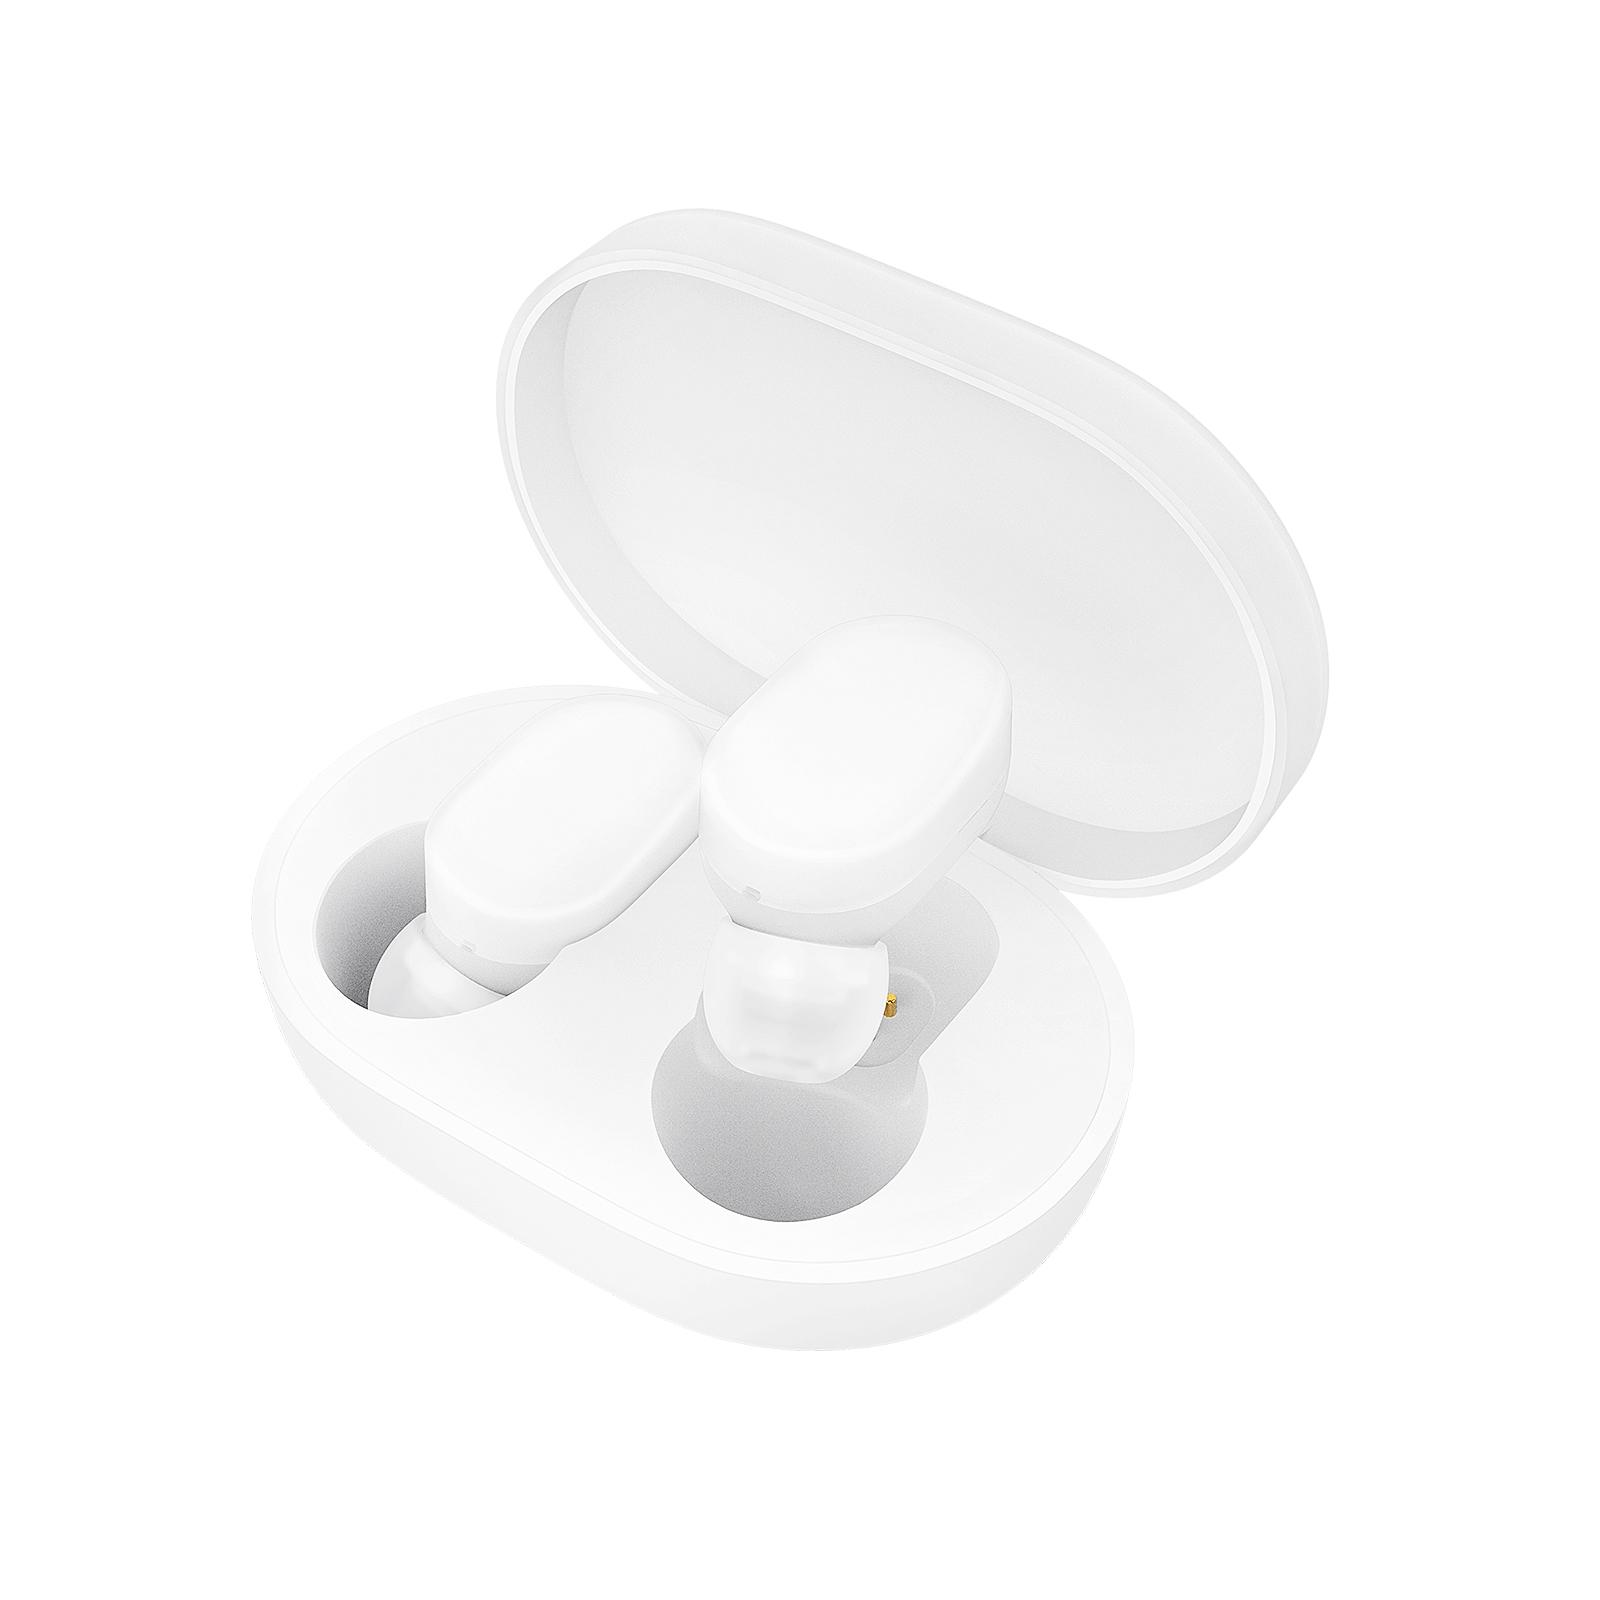 Наушники Xiaomi Mi AirDots Youth Edition: Фото 2